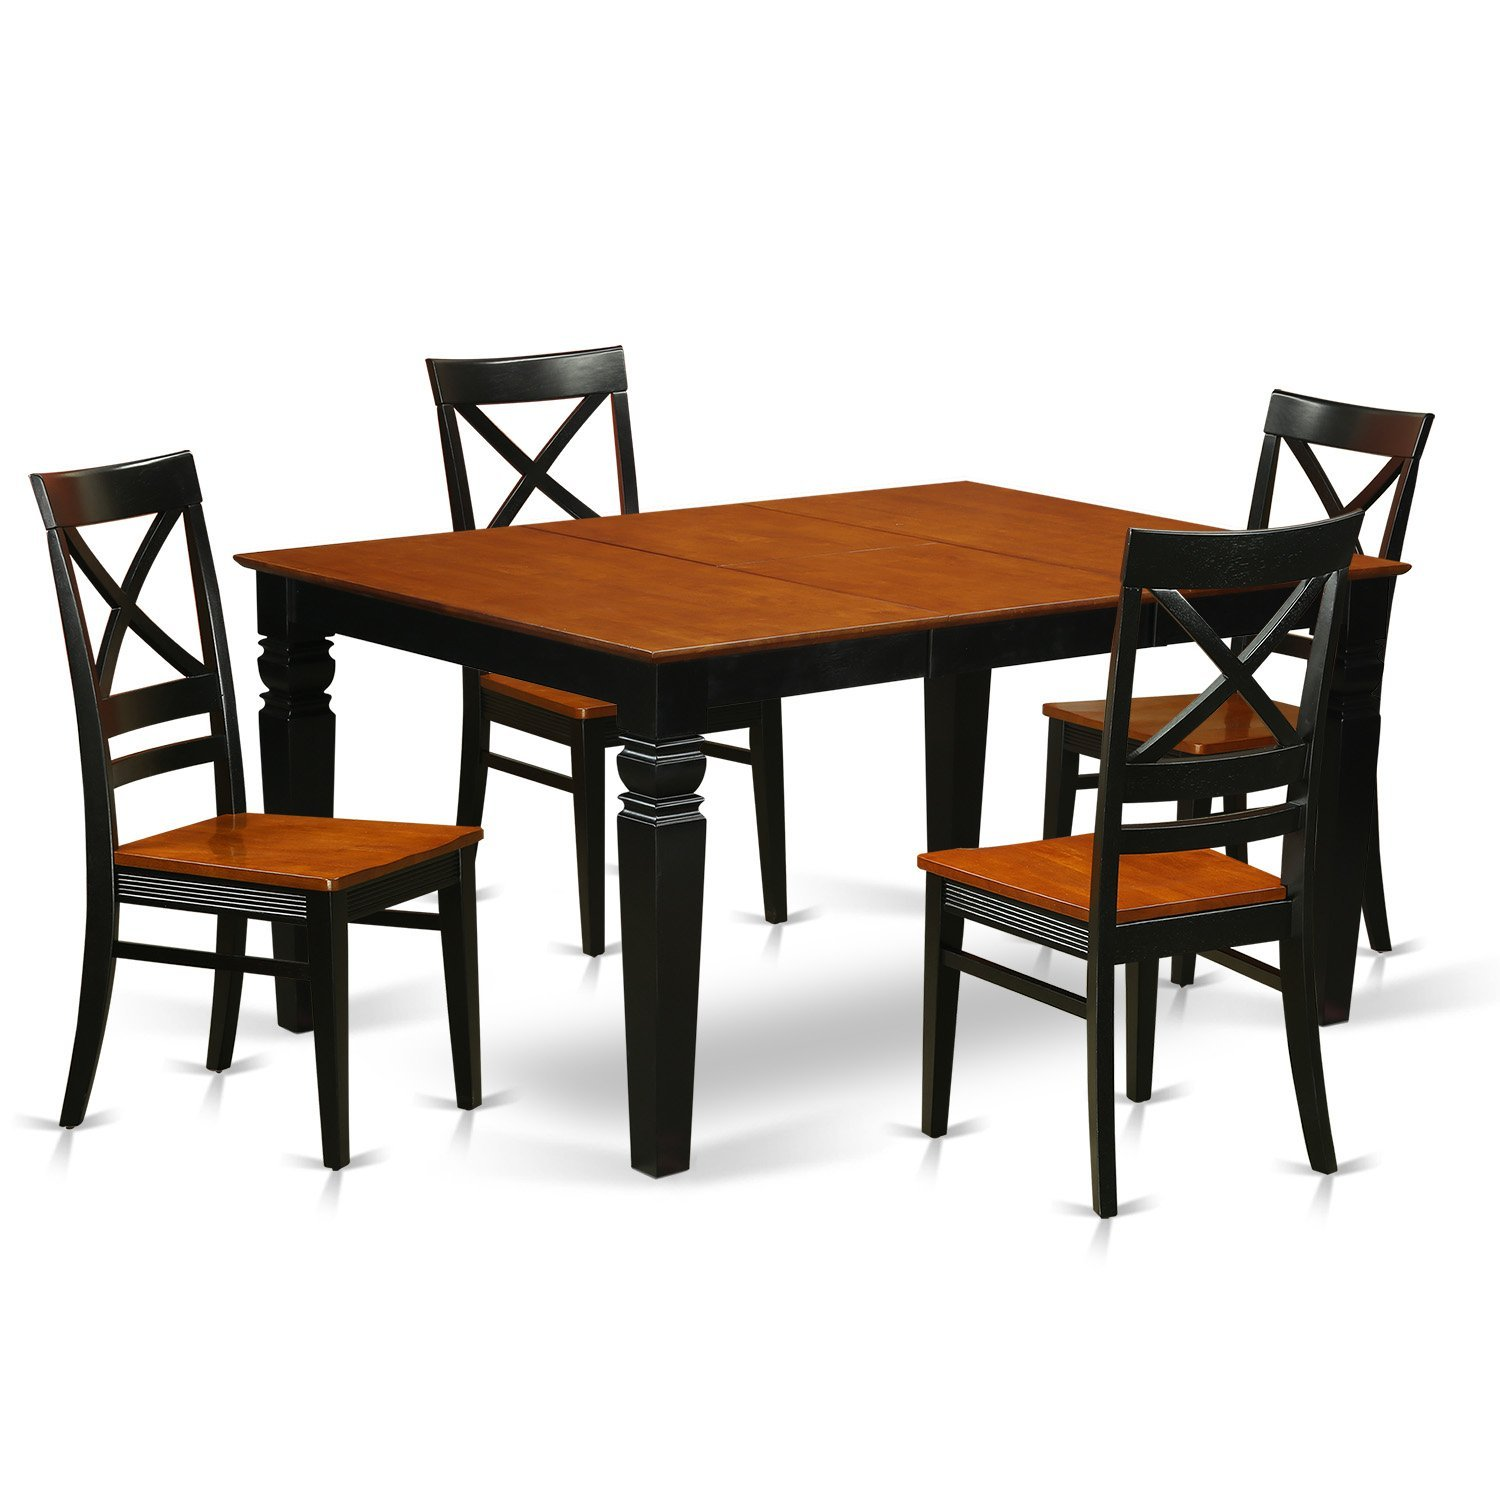 East West Furniture Weston WEQU5-BCH-W 5 Pc Set with a Kitchen Table and 4 Wood Dining Chairs, Black